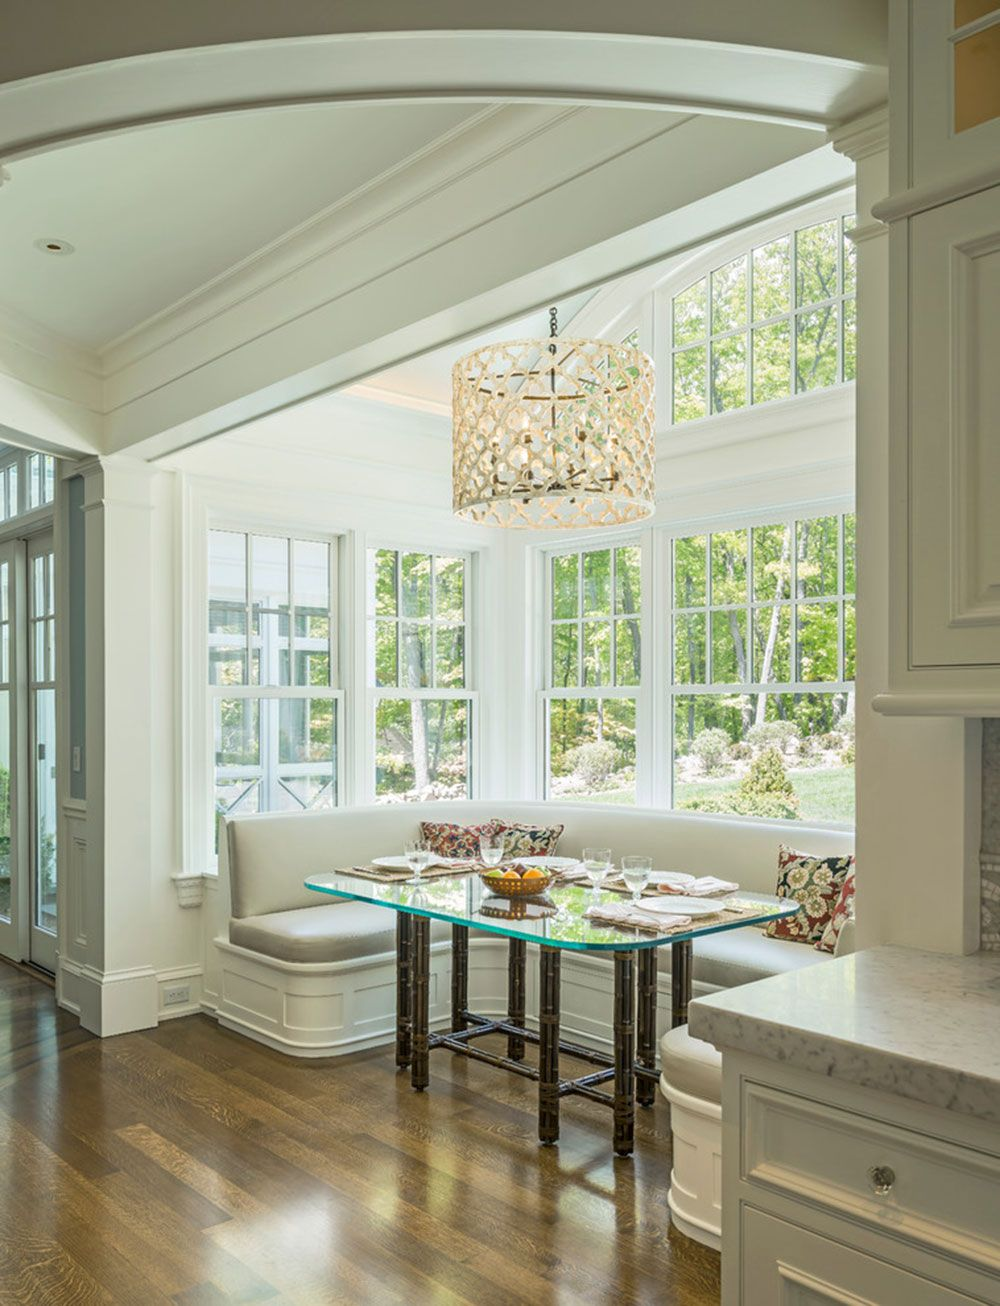 Breakfast Nook Design Ideas For Awesome Mornings5 | Interior ...